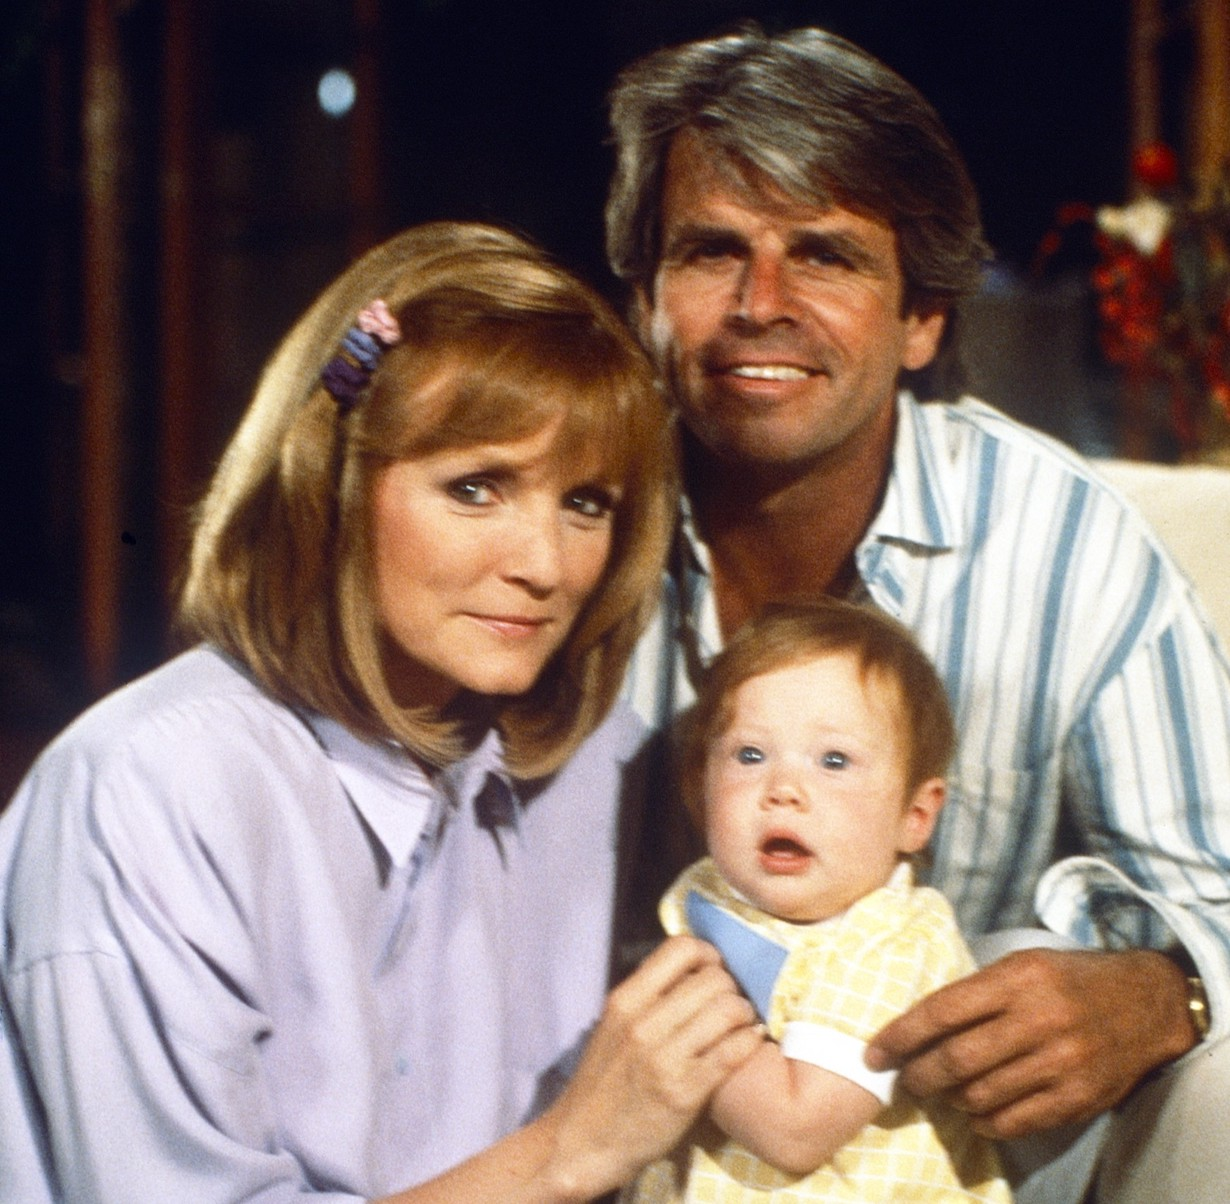 KNOTS LANDING, adults, from left: Constance McCashin, William Devane, (1987), 1979-1993. © CBS /Courtesy Everett Collection